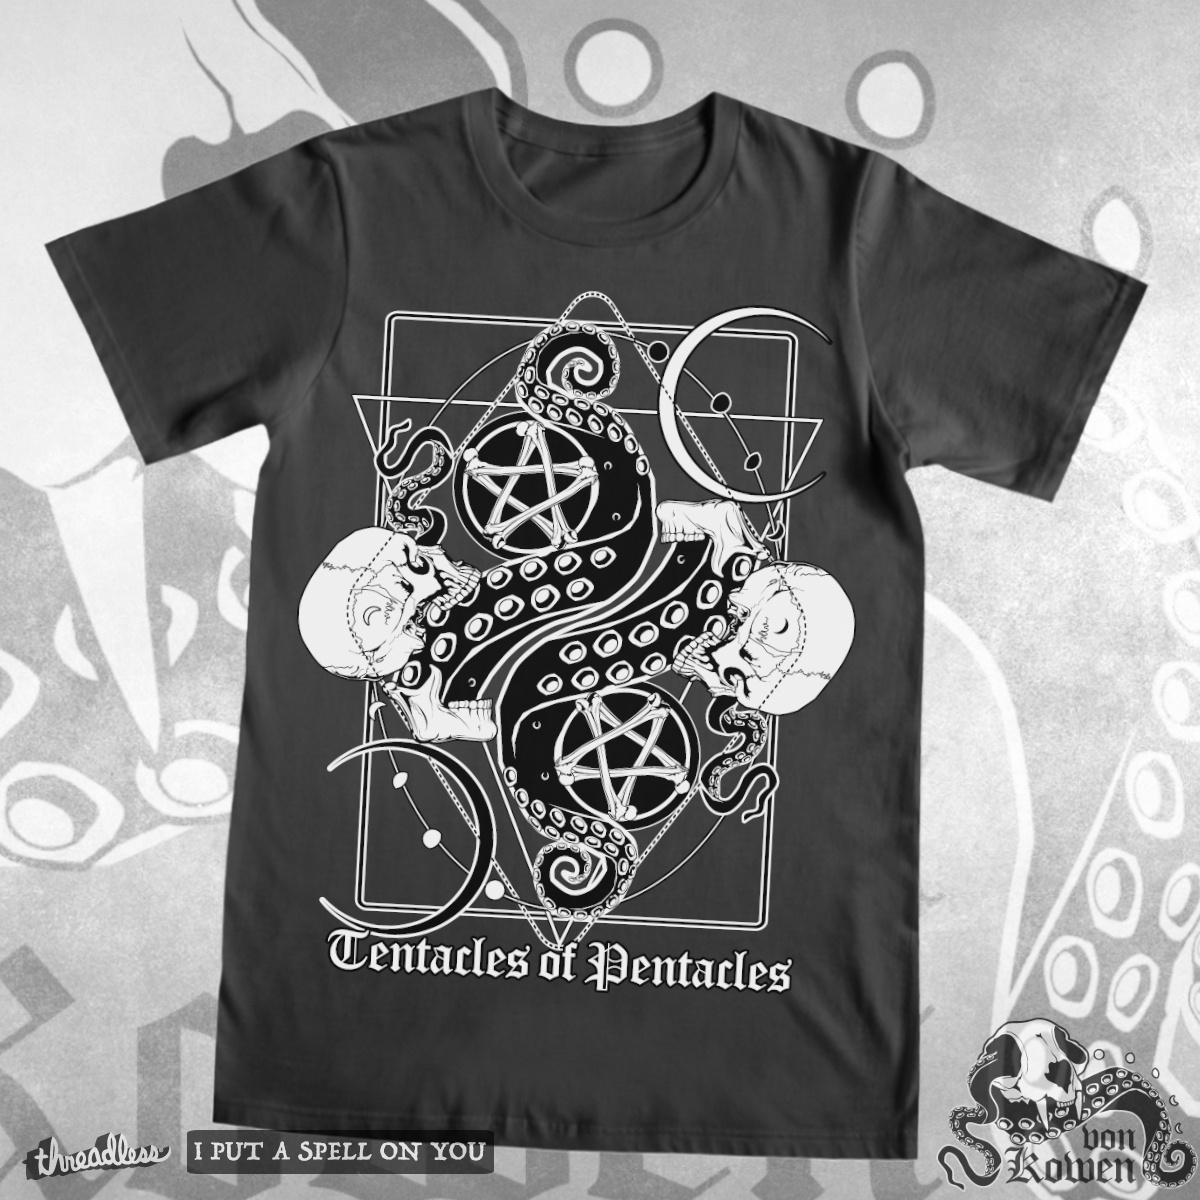 Tentacles of Pentacles, a cool t-shirt design